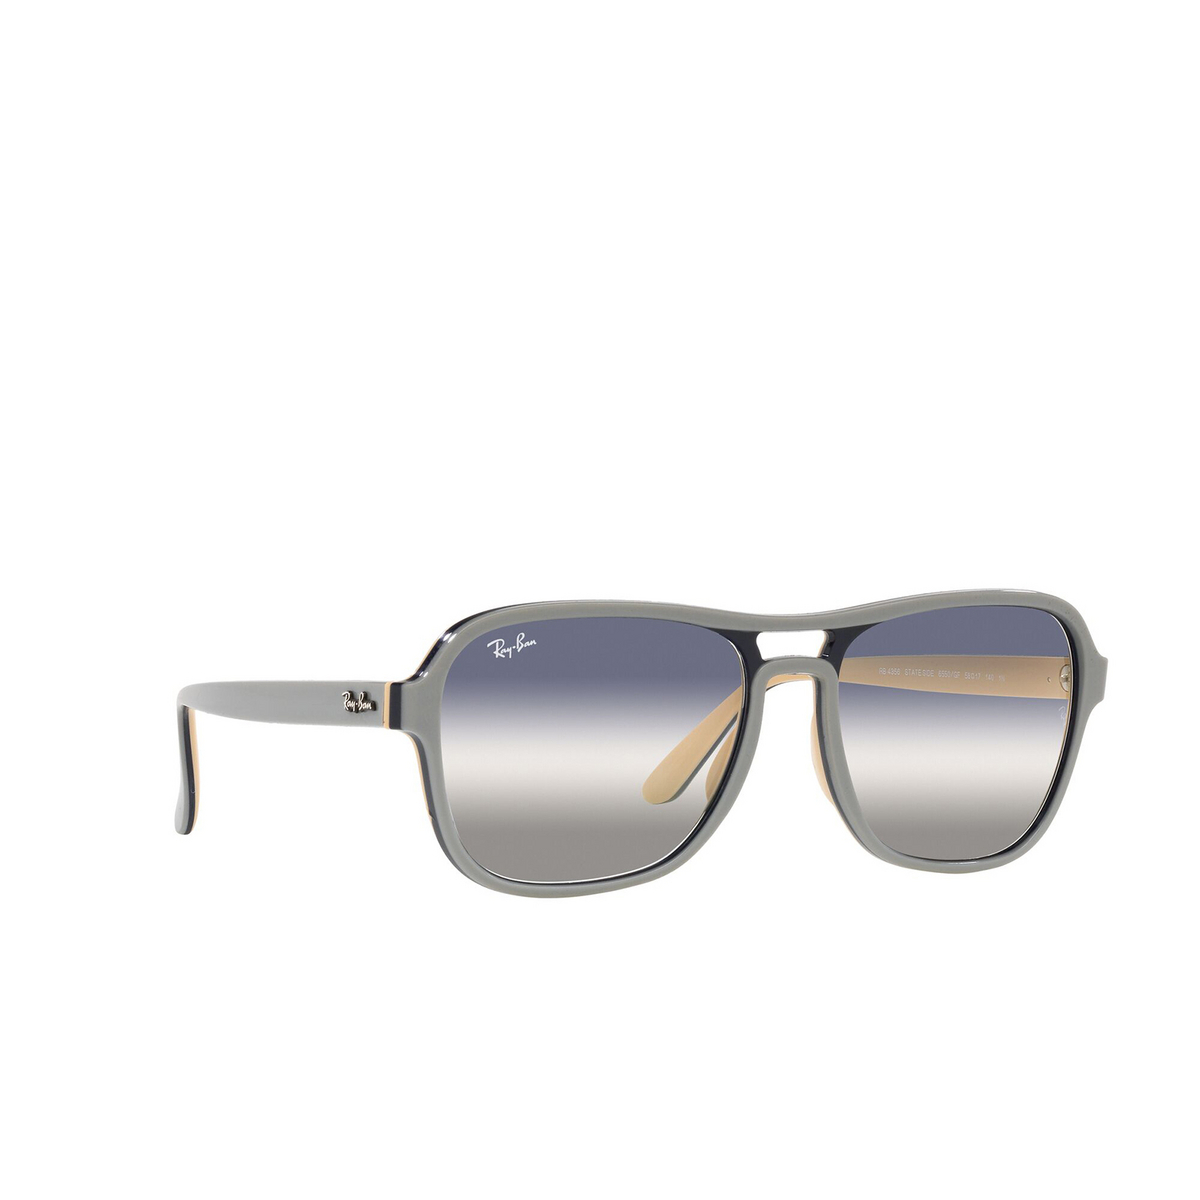 Ray-Ban® Square Sunglasses: State Side RB4356 color Light Gray Blu Light Brown 6550GF - three-quarters view.